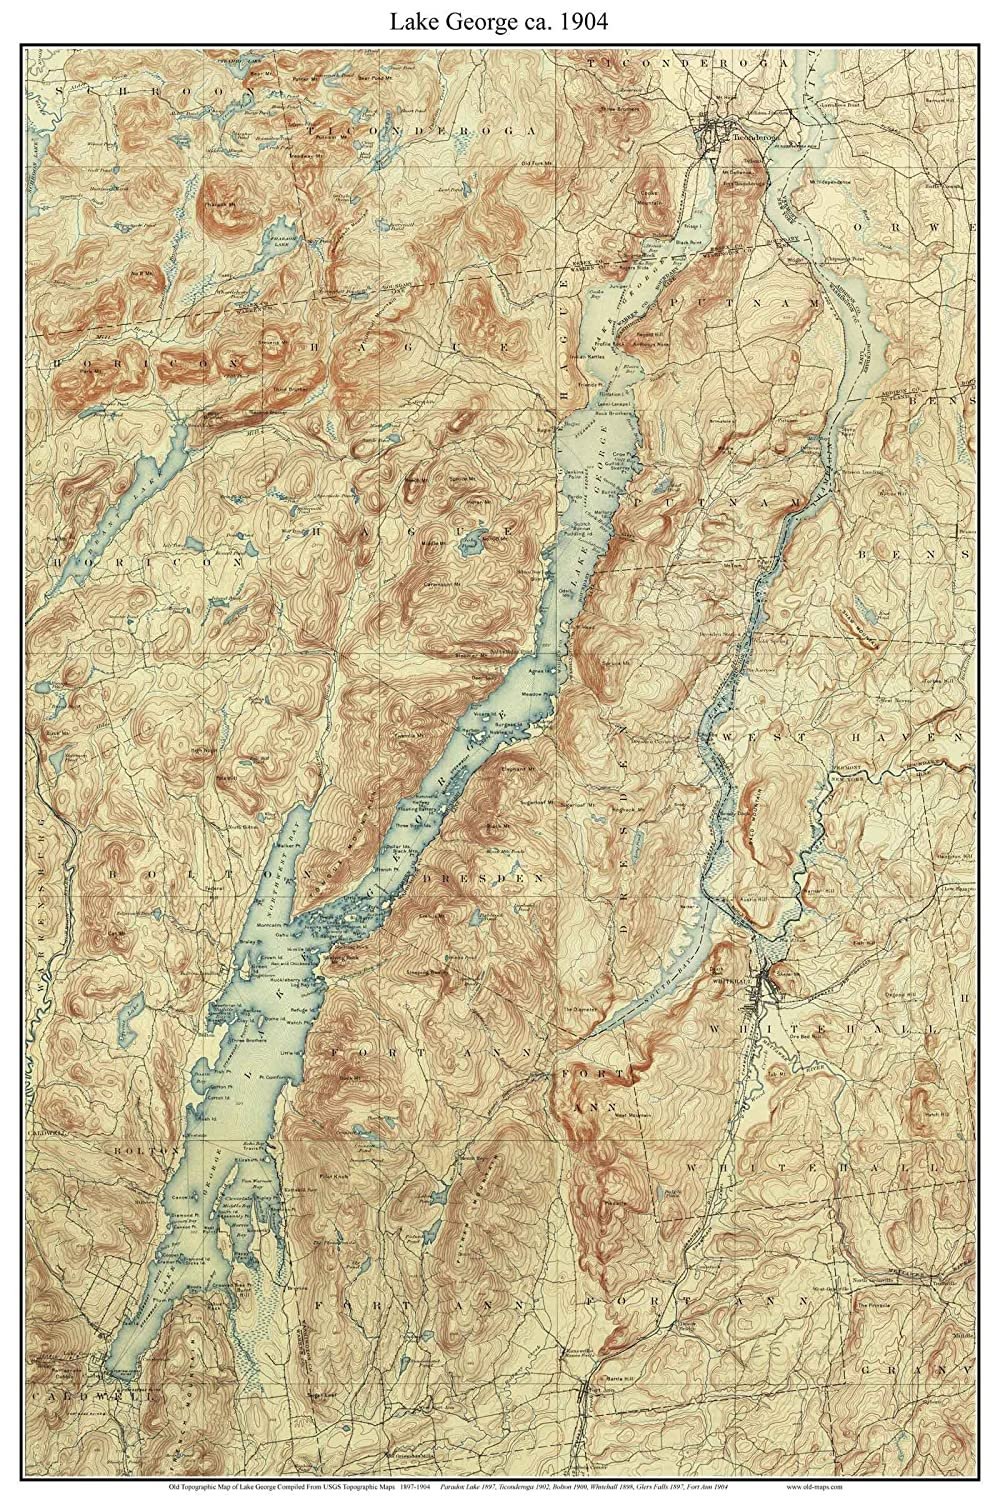 Amazon.com: Lake George - 1904 USGS Old Topographic Map Custom ...